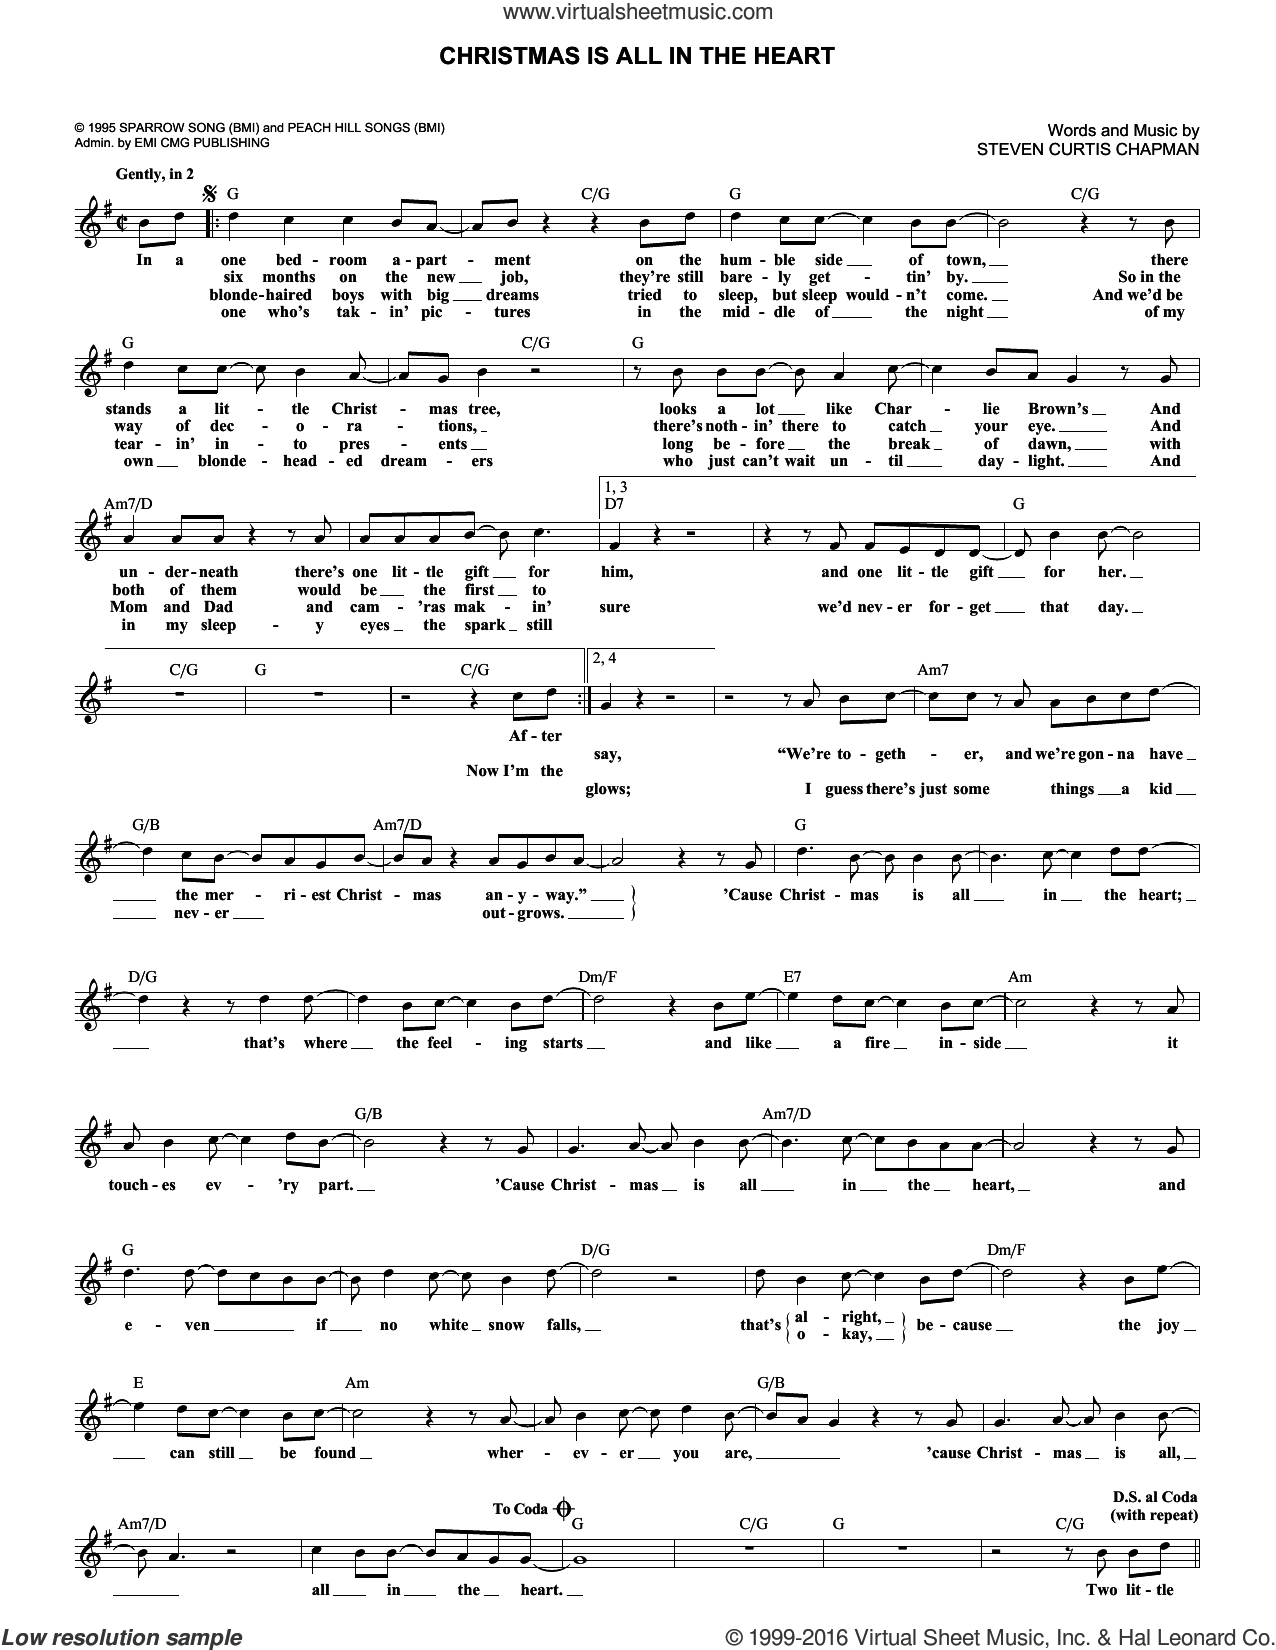 Christmas Is All In The Heart sheet music for voice and other instruments (fake book) by Steven Curtis Chapman, Christmas carol score, intermediate voice. Score Image Preview.